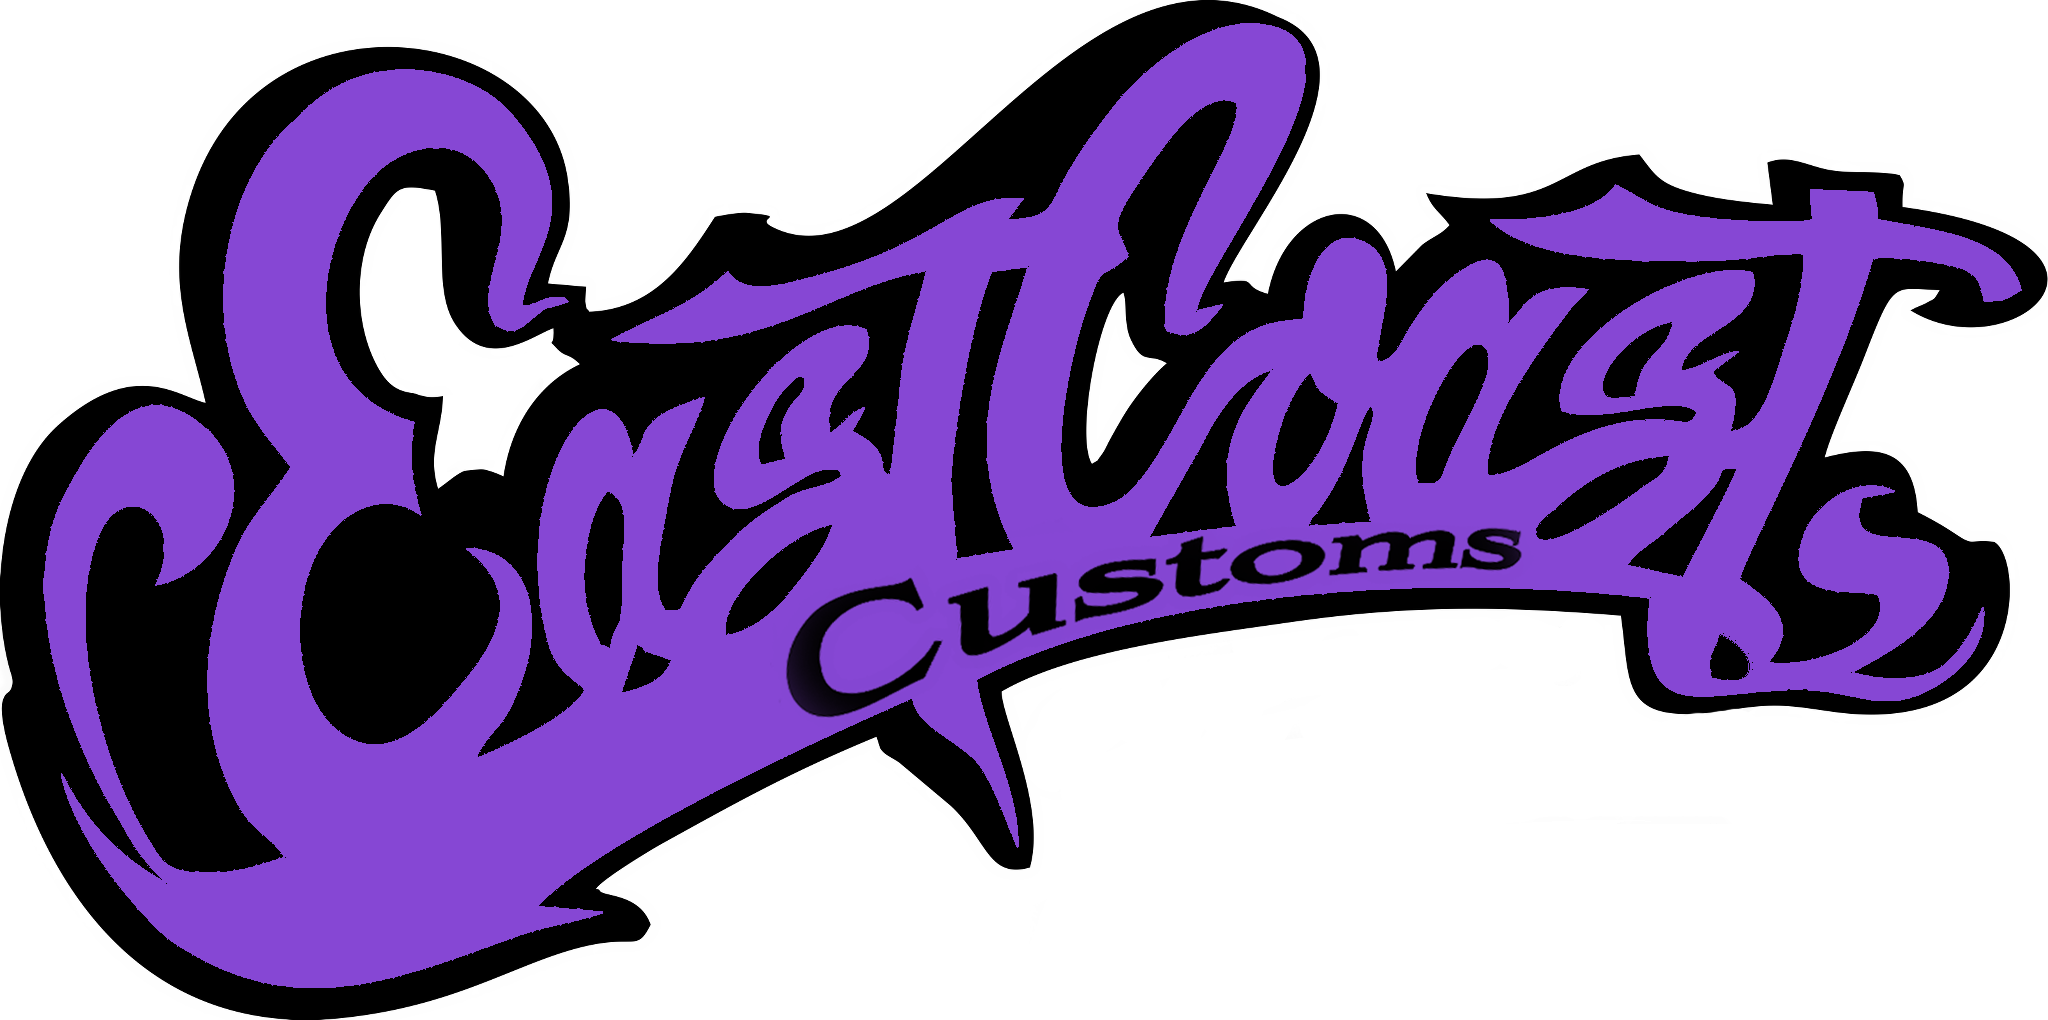 east-coast-customs-purple.png